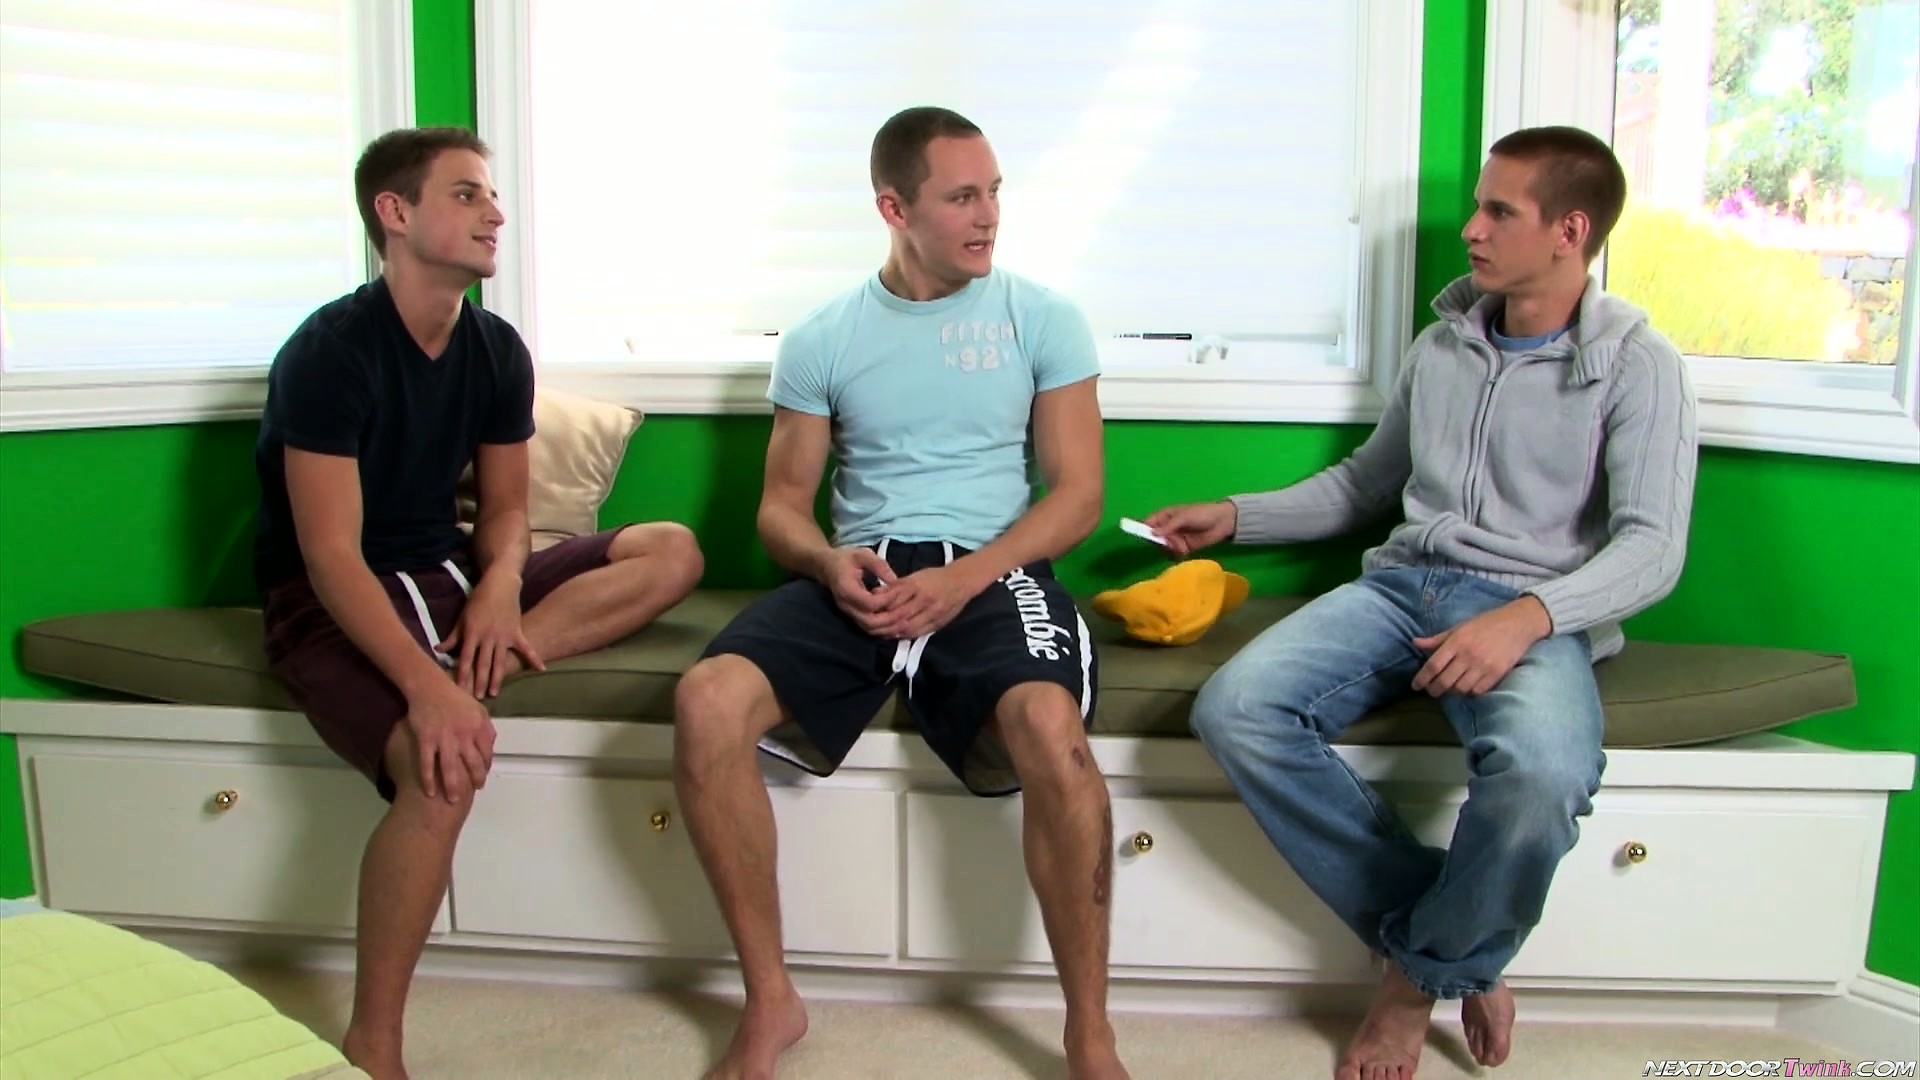 Porn Tube of Three Gays Make A Dare And One Guy Shows Off His Ass For The Others